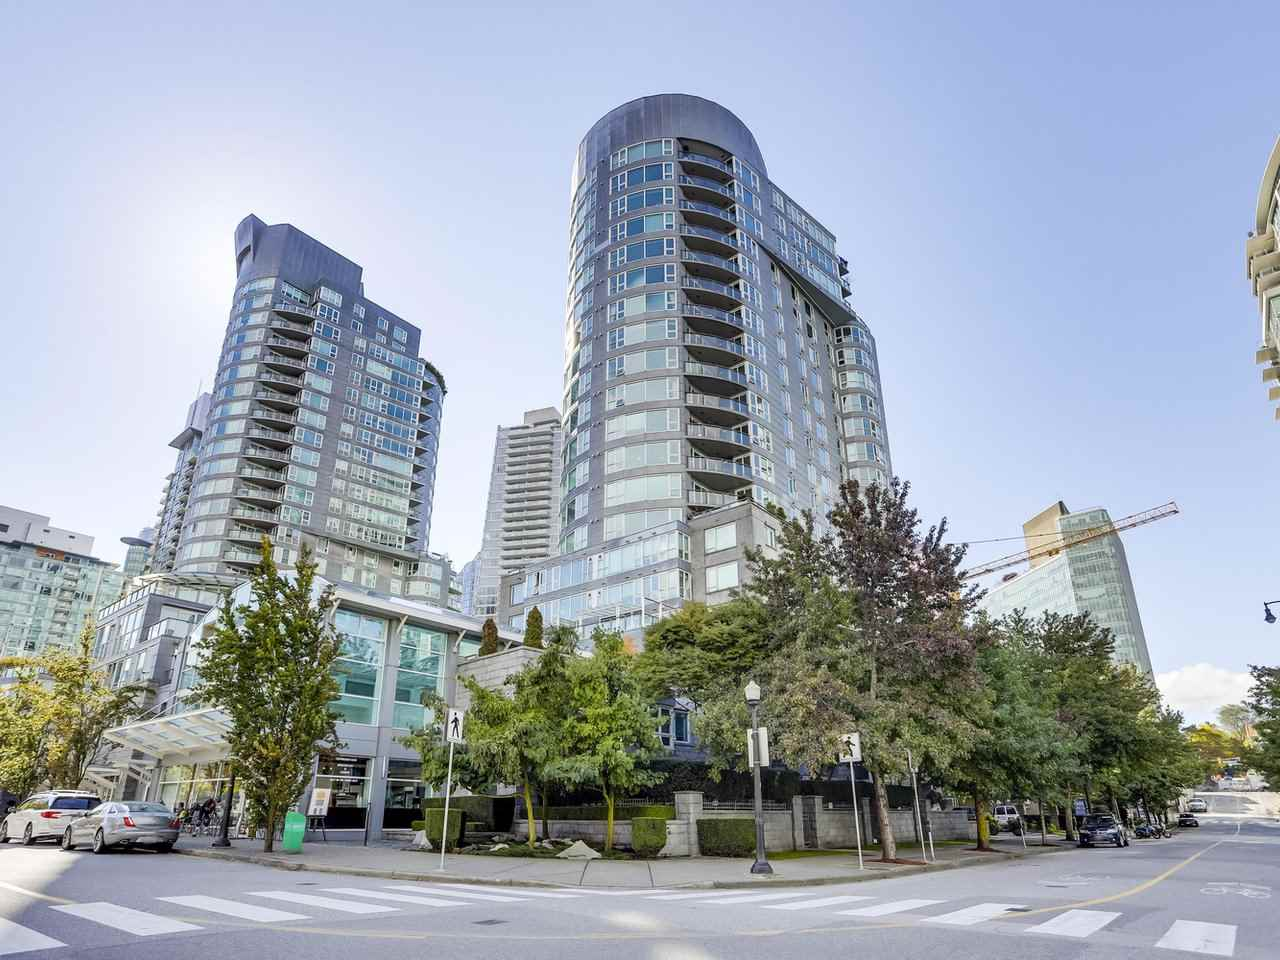 Buliding: 560 Cardero Street, Vancouver, BC